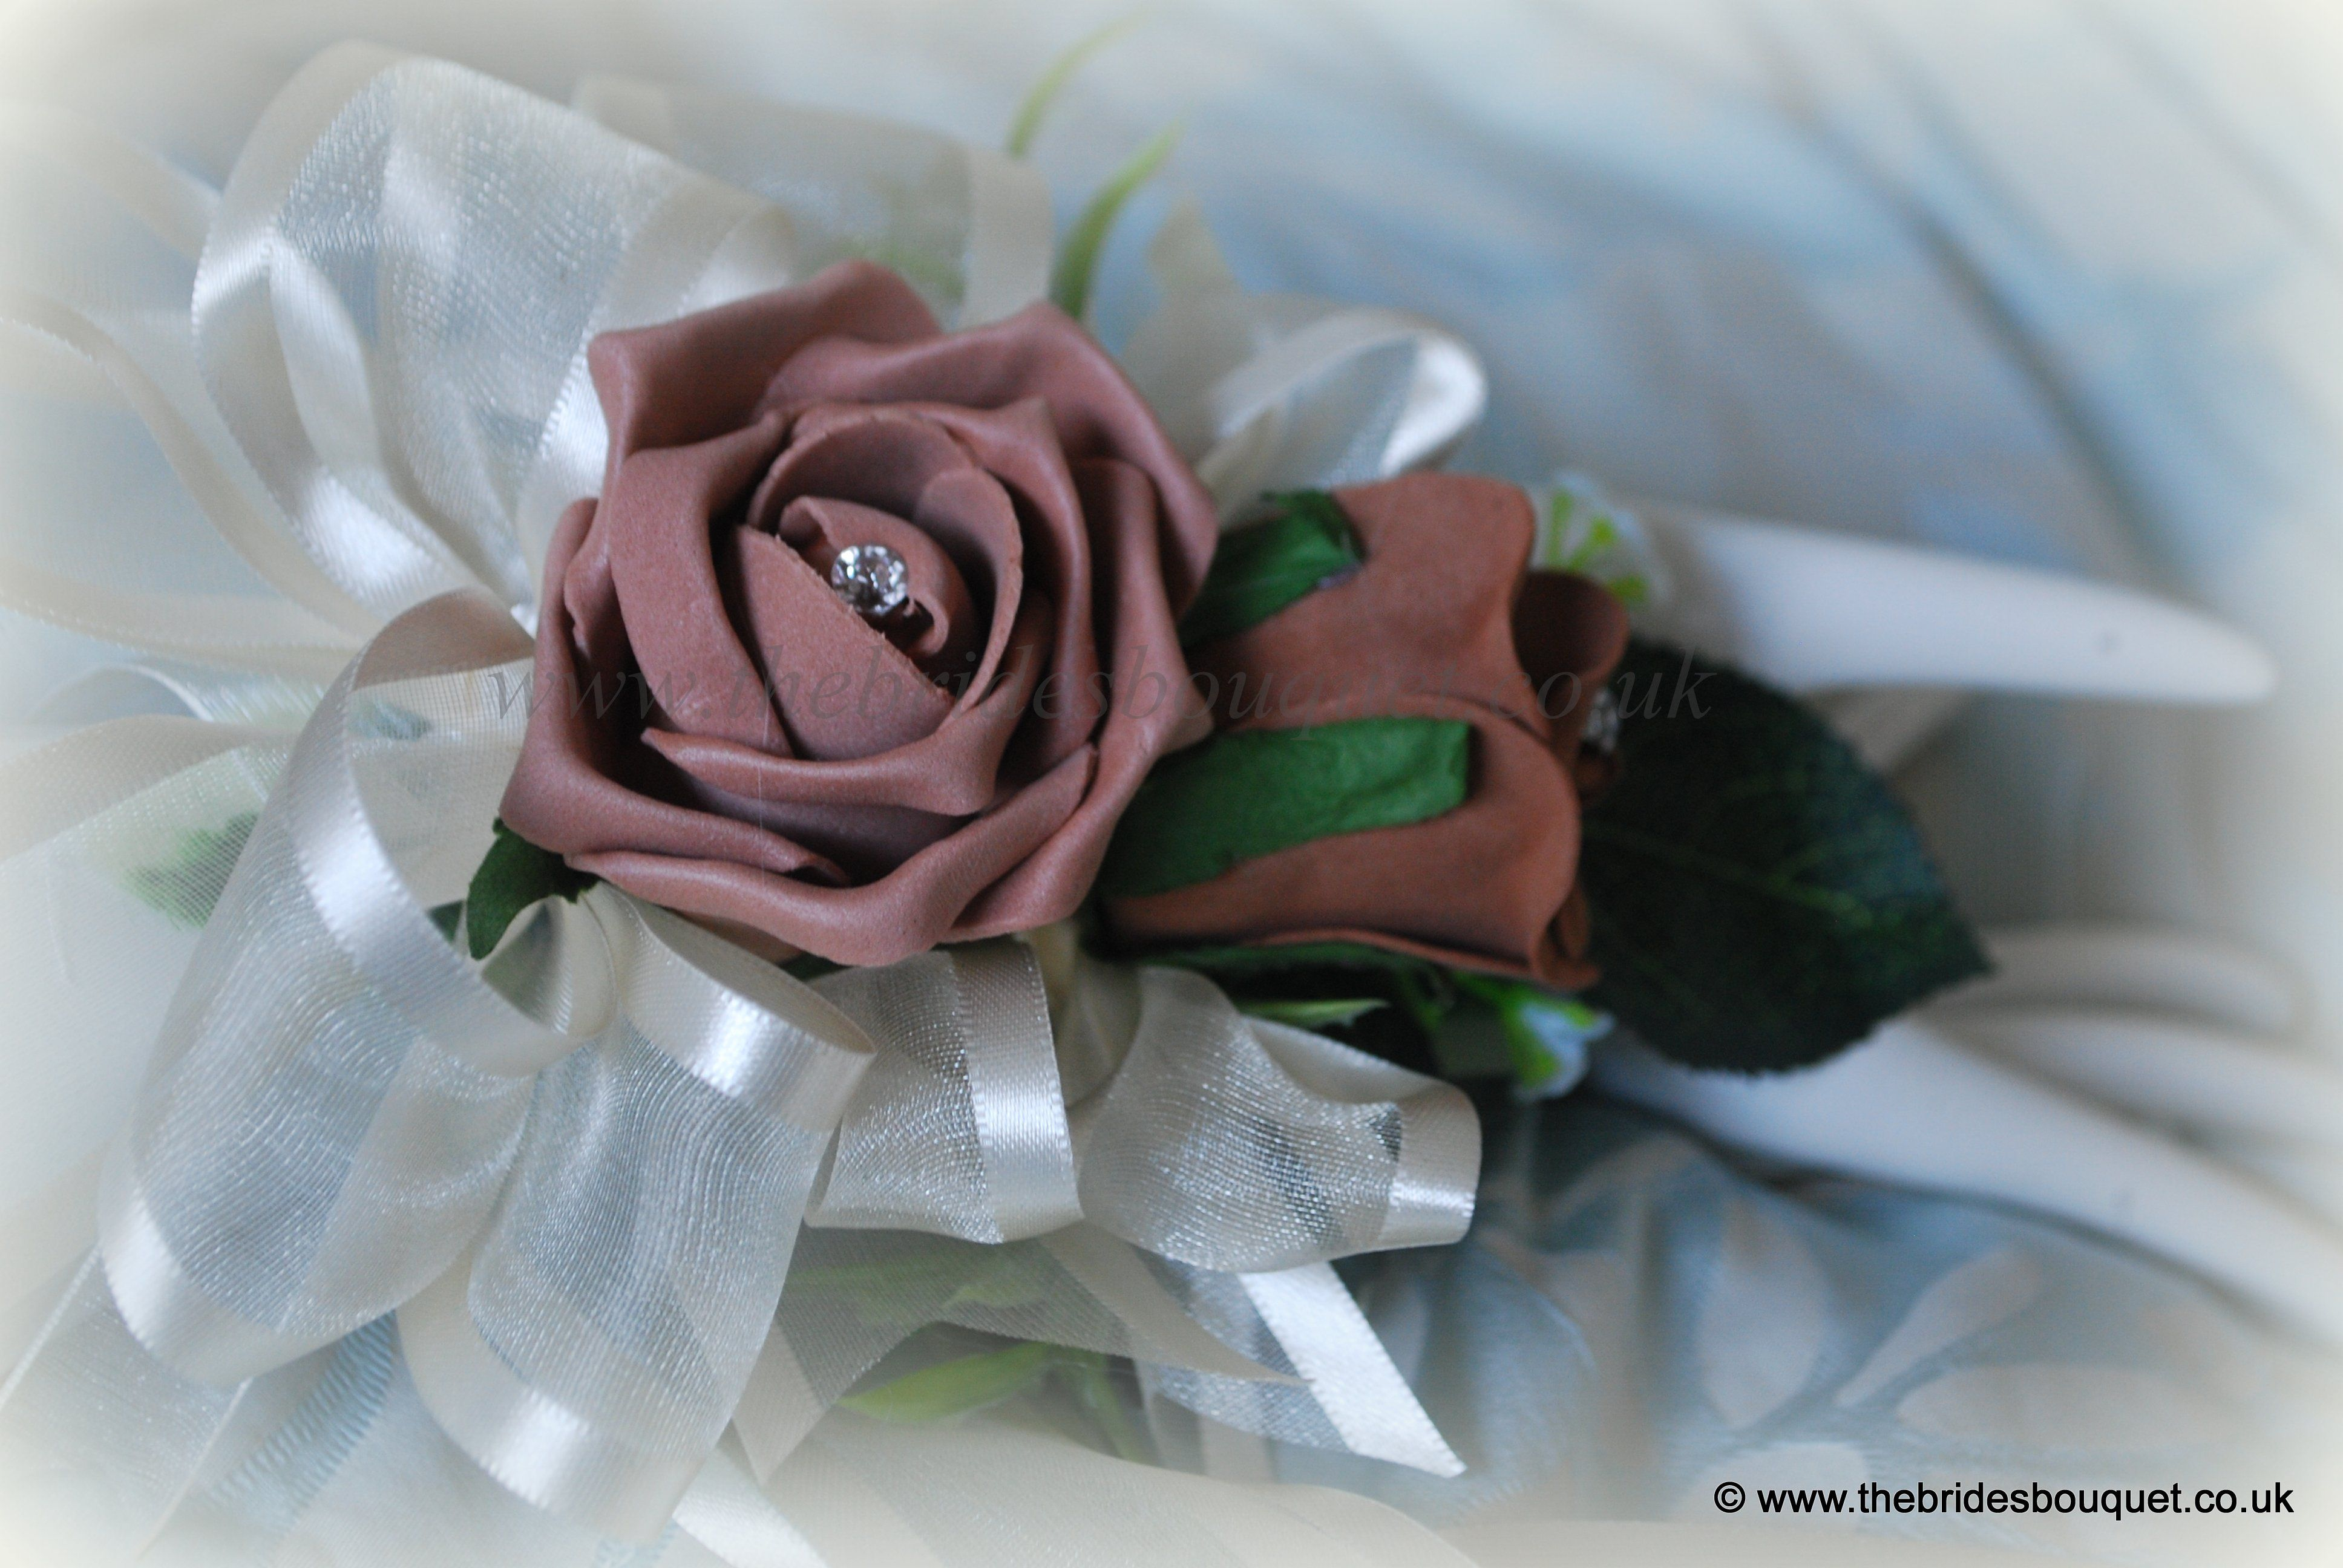 Chocolate and mocha wedding flowers wrist corsage by www chocolate and mocha wedding flowers wrist corsage by thebridesbouquet izmirmasajfo Gallery